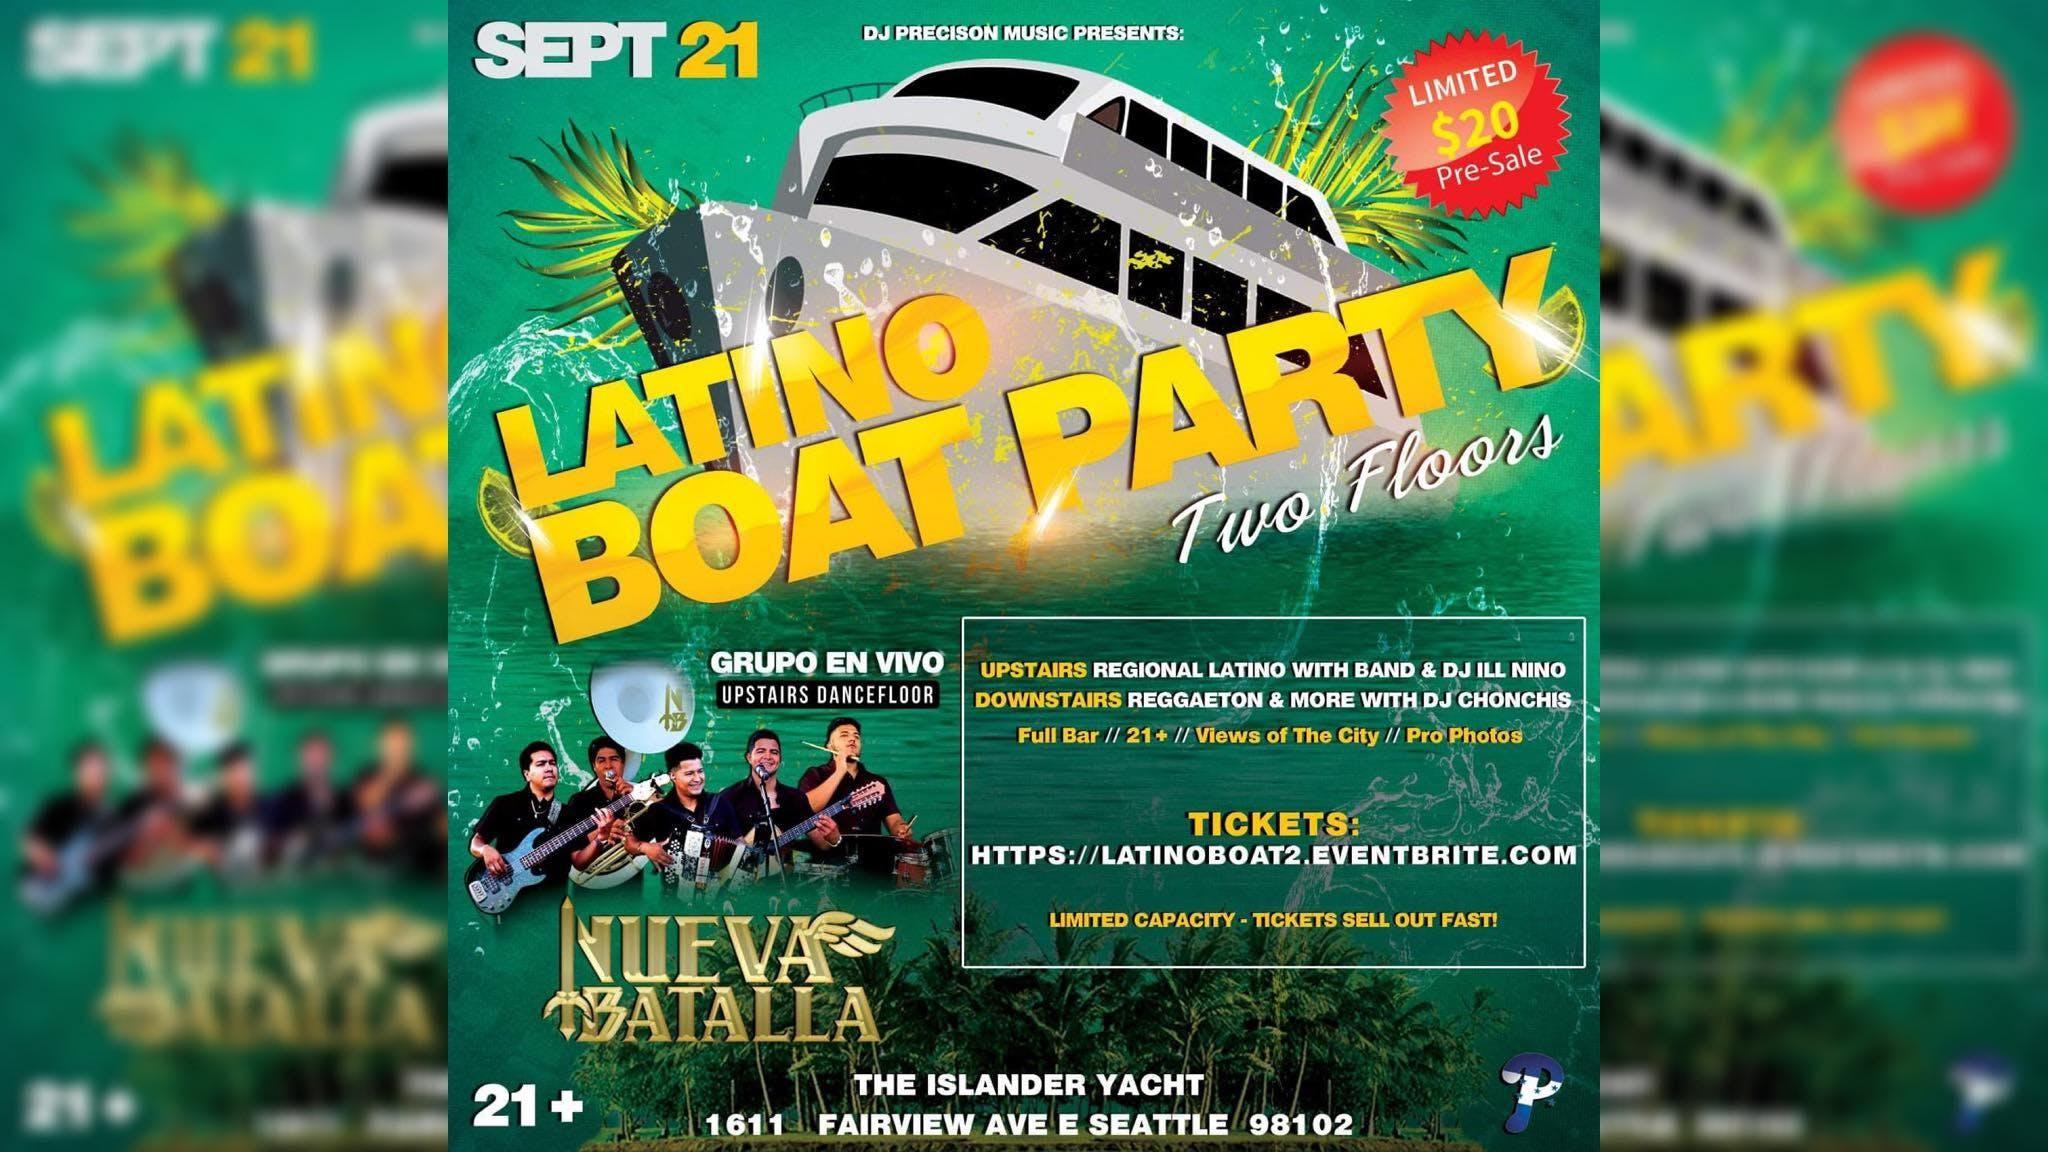 Latino Boat Party With Band 2